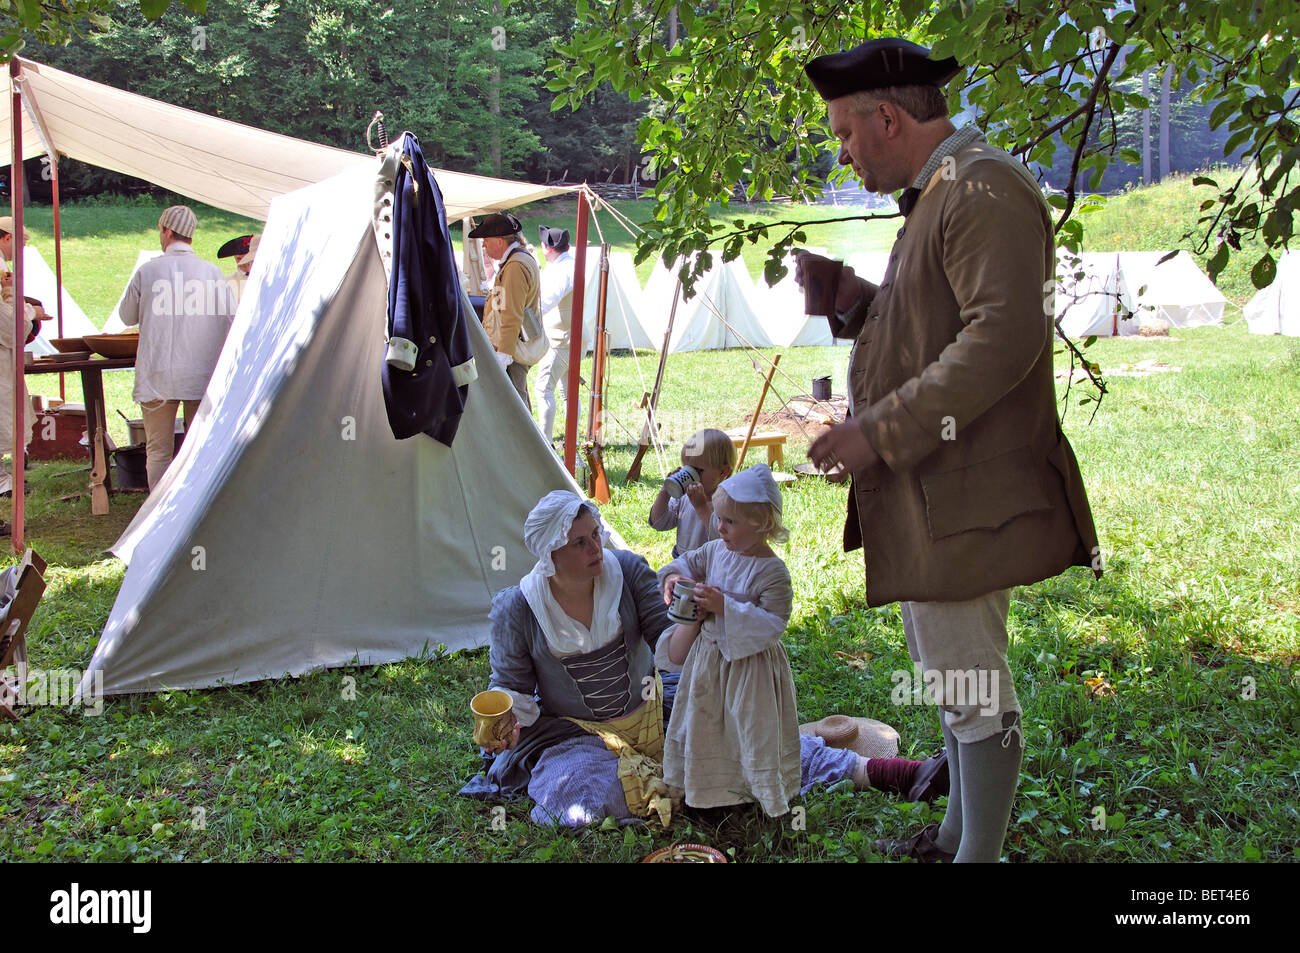 Family in army tent c& - costumed American Revolutionary War (1770u0027s) era re-enactment & Family in army tent camp - costumed American Revolutionary War ...